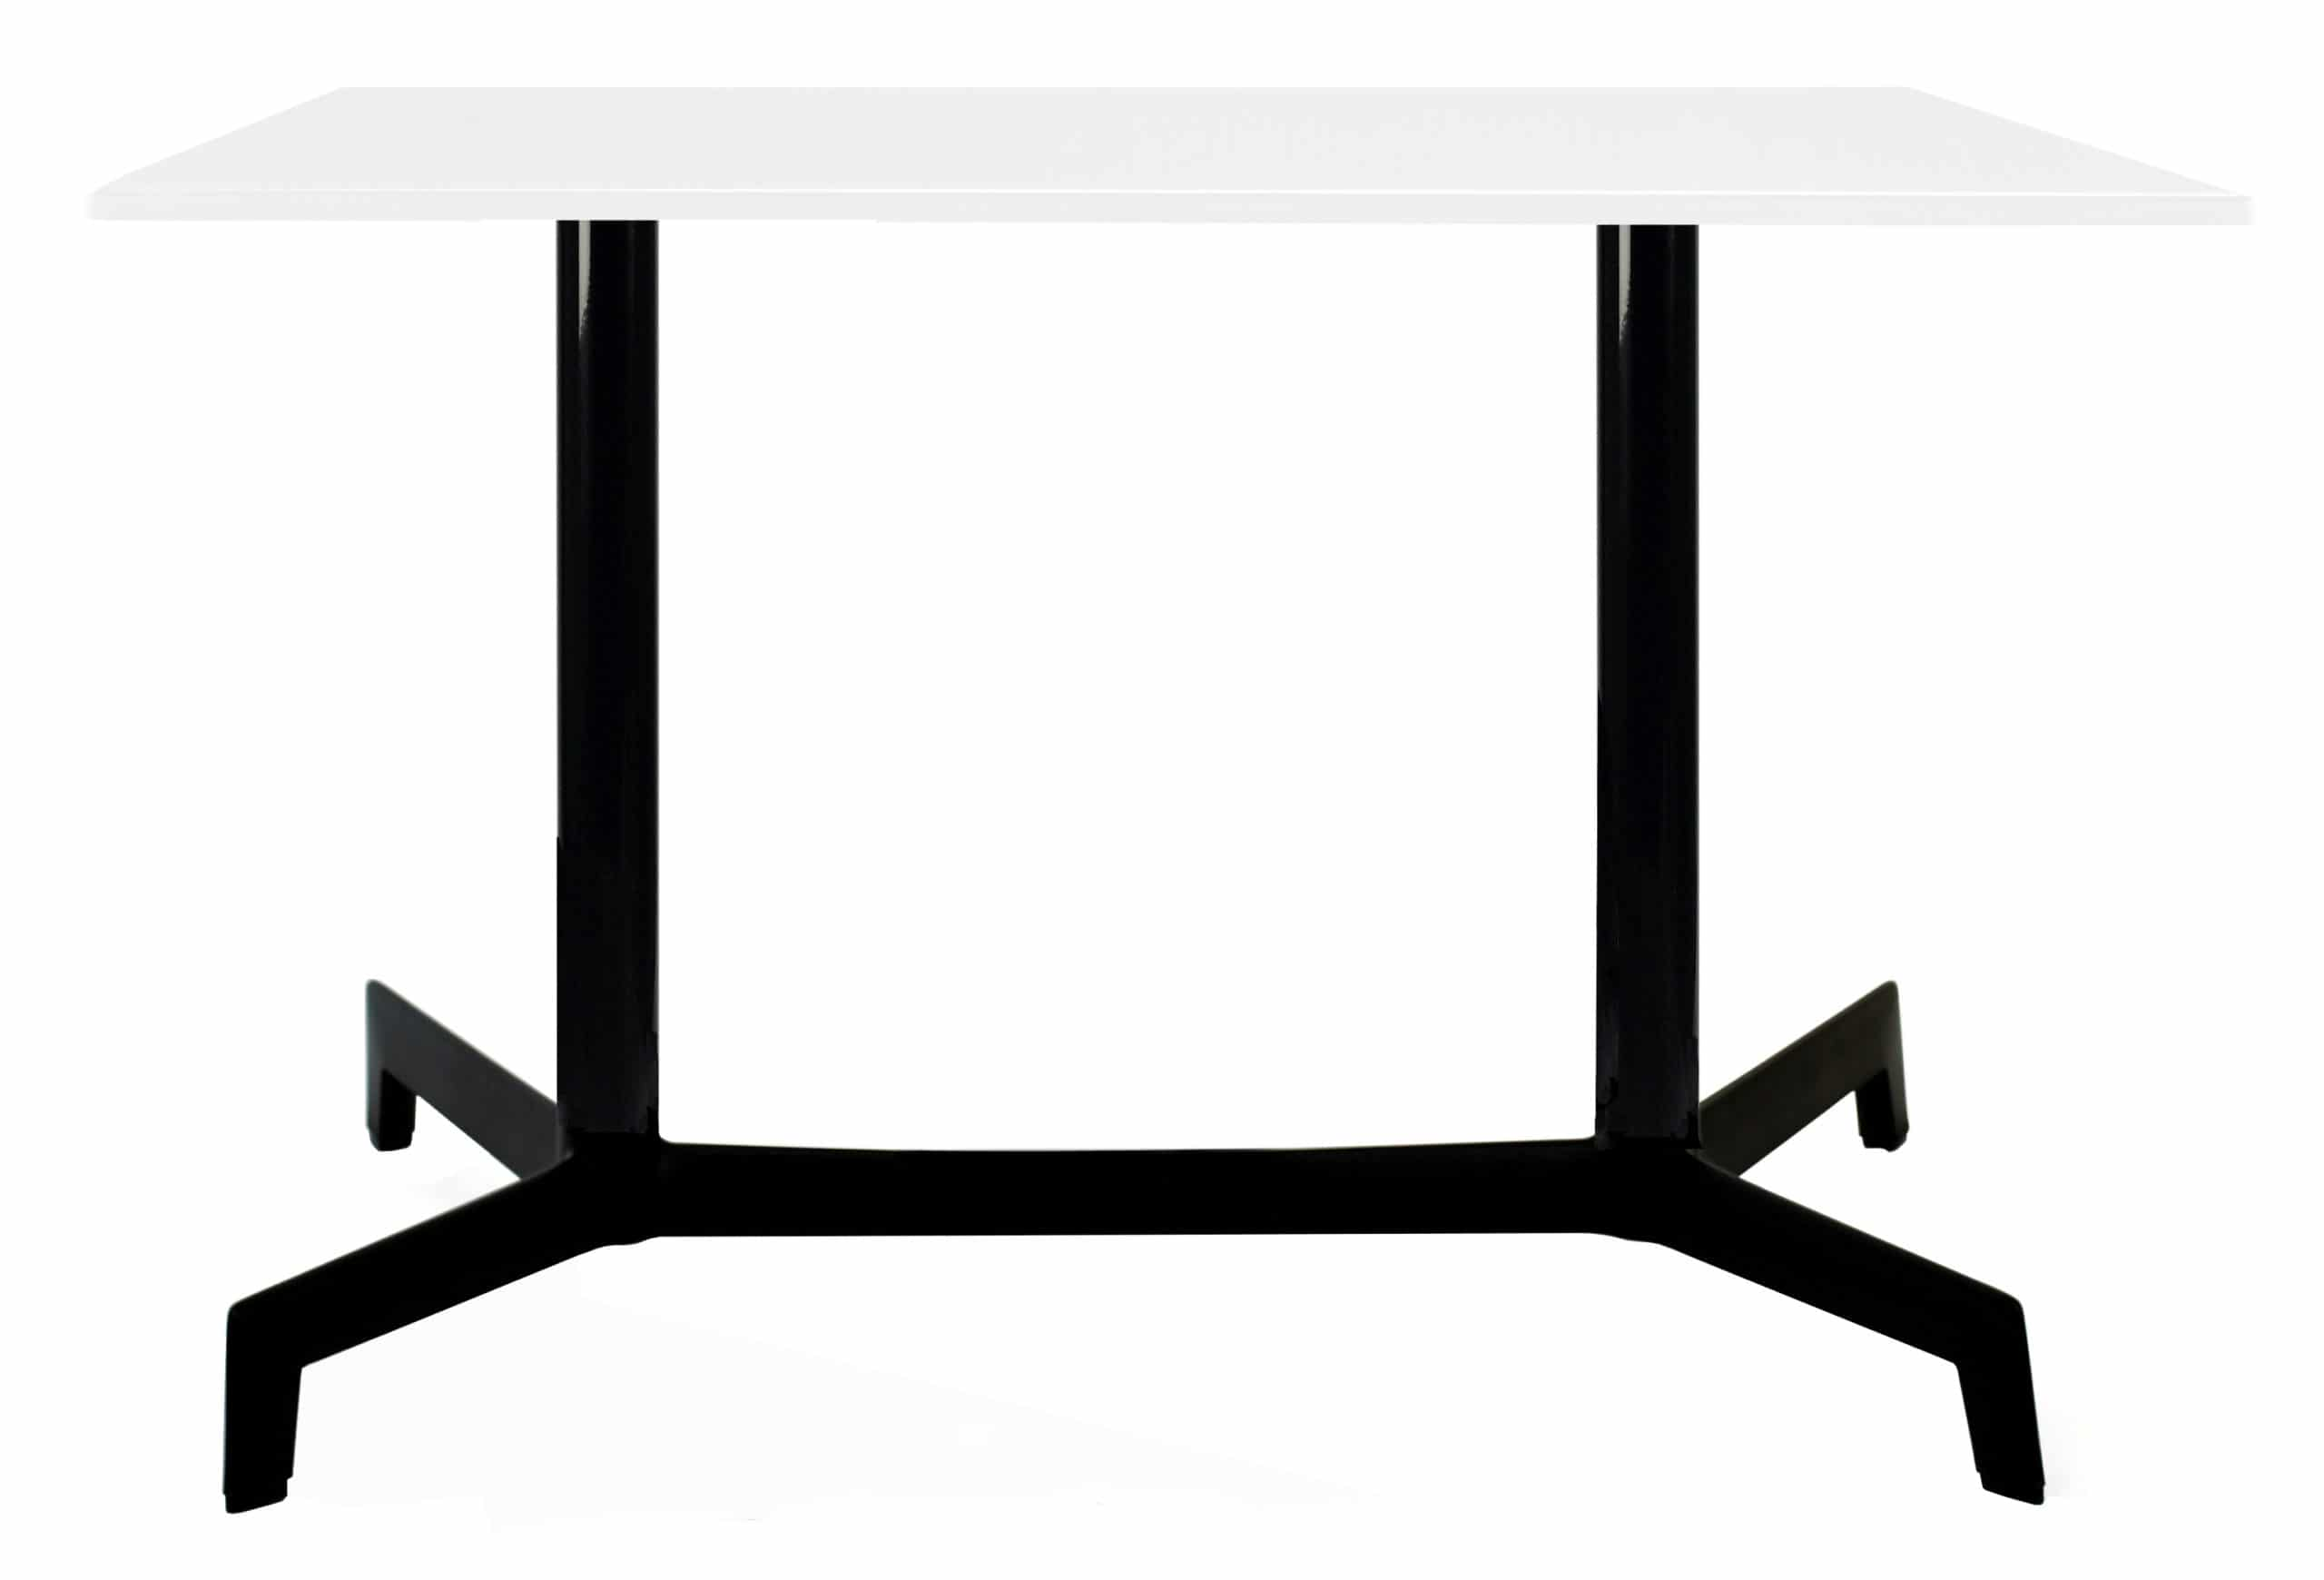 <p>Outdoor Furniture Contemporary Collection – Navarre Commercial Dining Table – Double Pedestal – Black Base.</p> <p> </p> <p>Table for indoor and outdoor use. Combine with tabletop and chairs of your choice.</p> <p> </p> <p>Adaptable to any environment being designed by architects. Capturing essential features such as elegance lightness, functionality, ergonomics and care for the environment.</p>